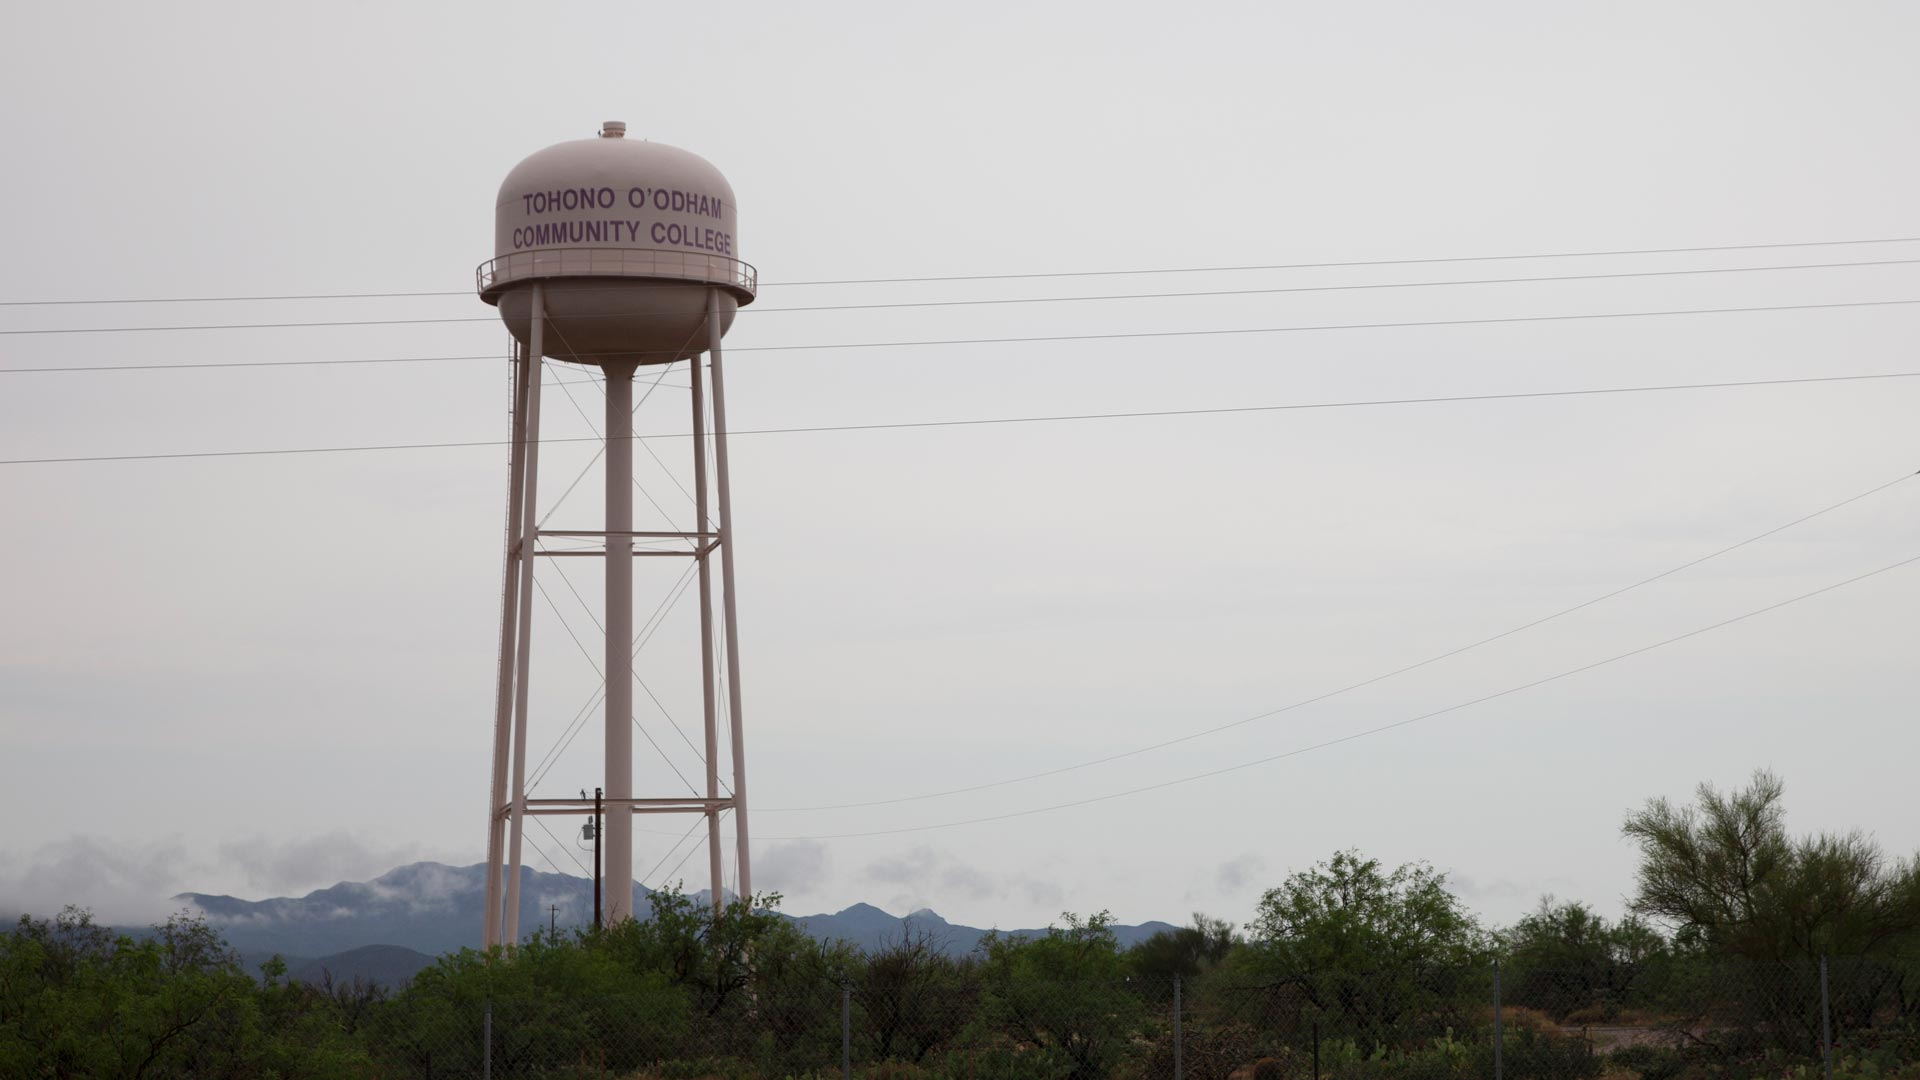 Water tower at the Tohono O'odham Community College